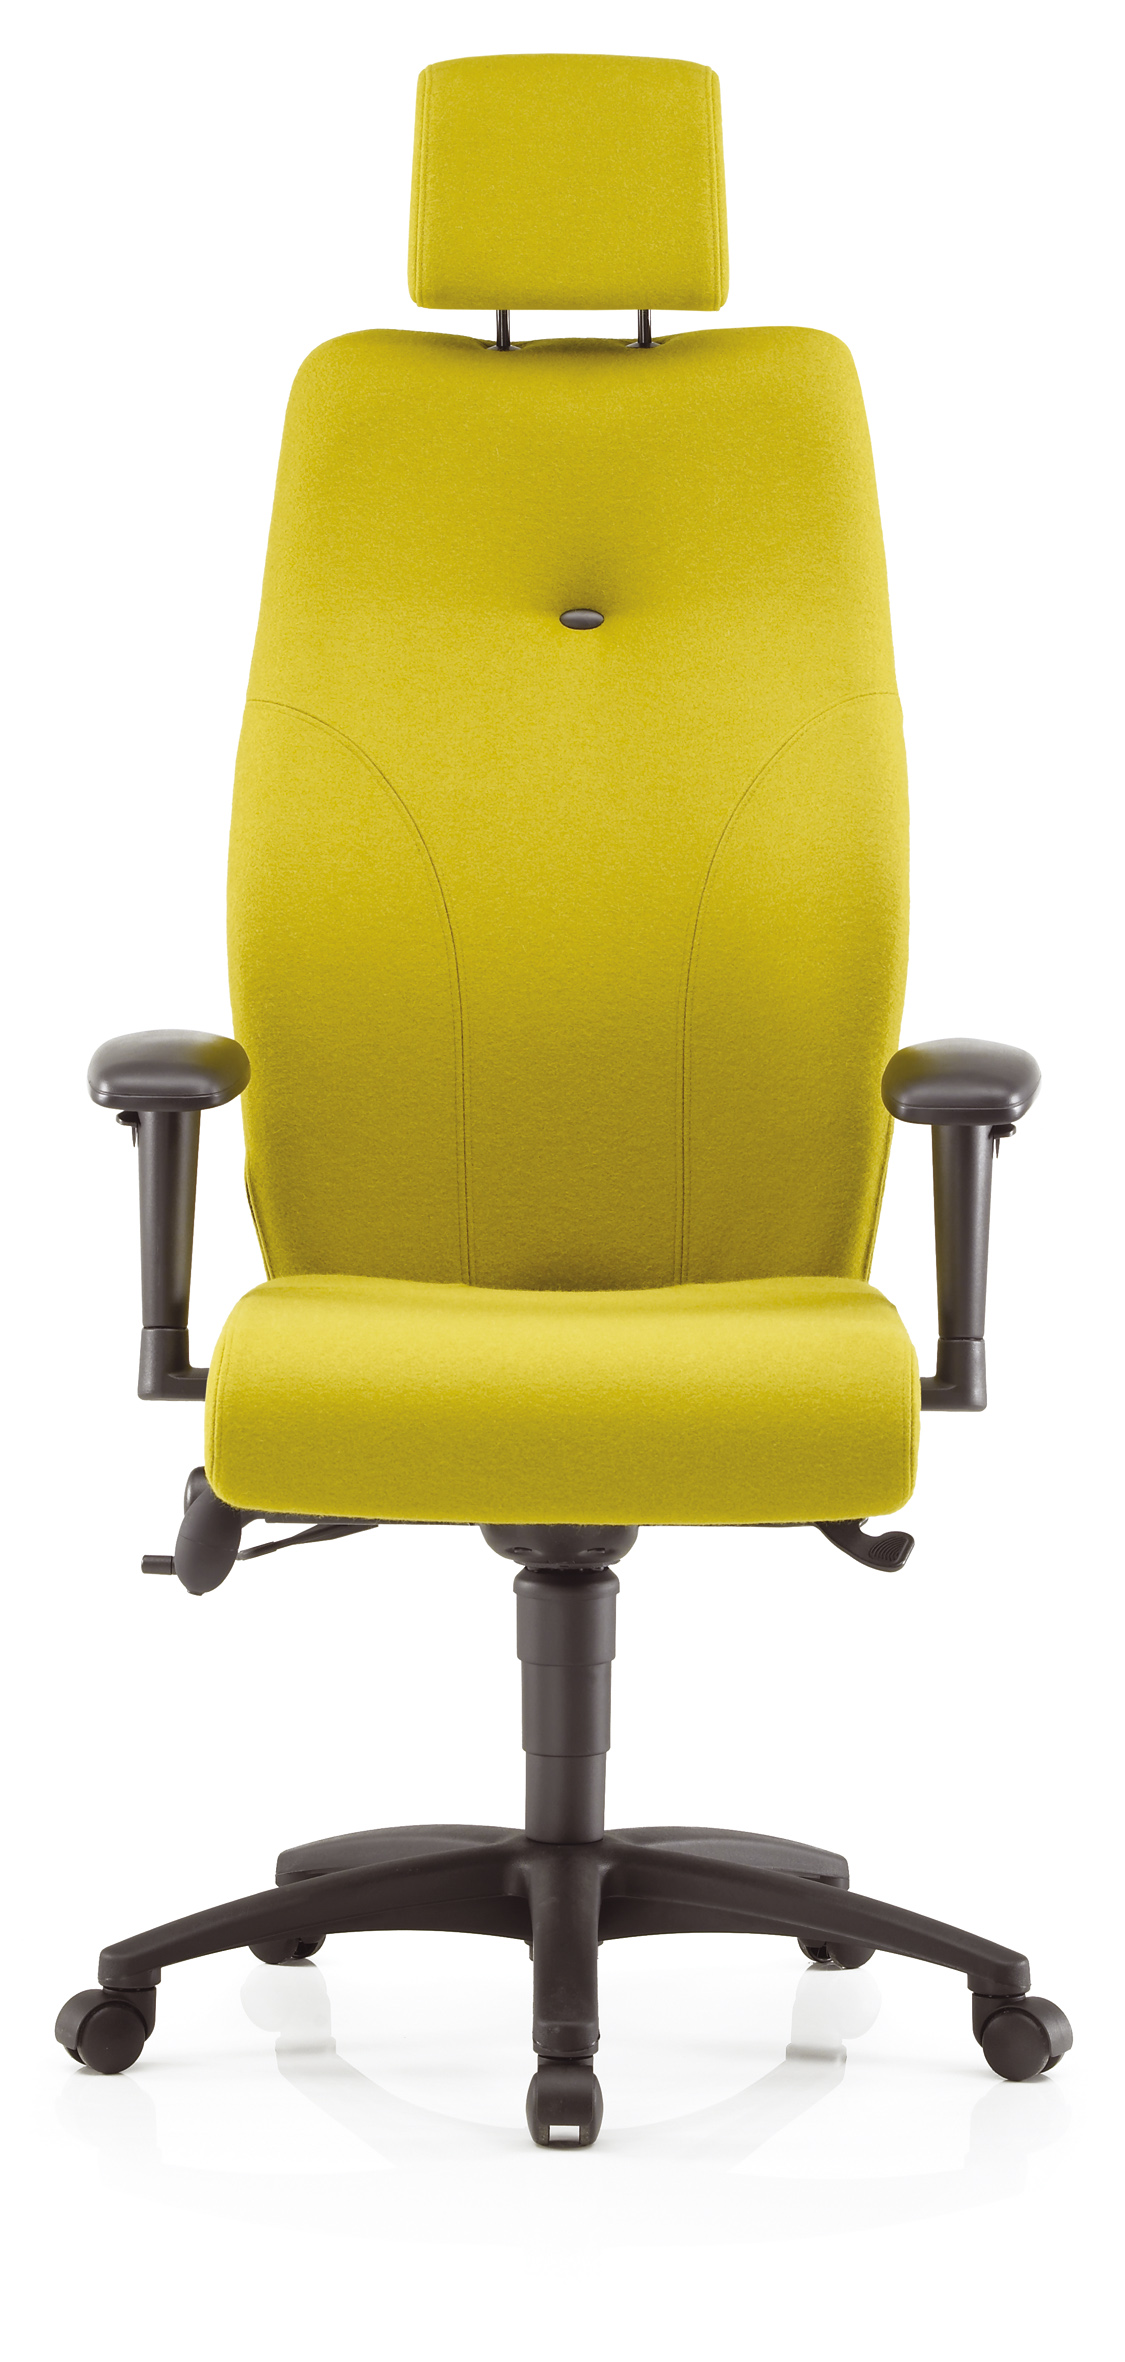 back-care-chairs-IMAGE 4